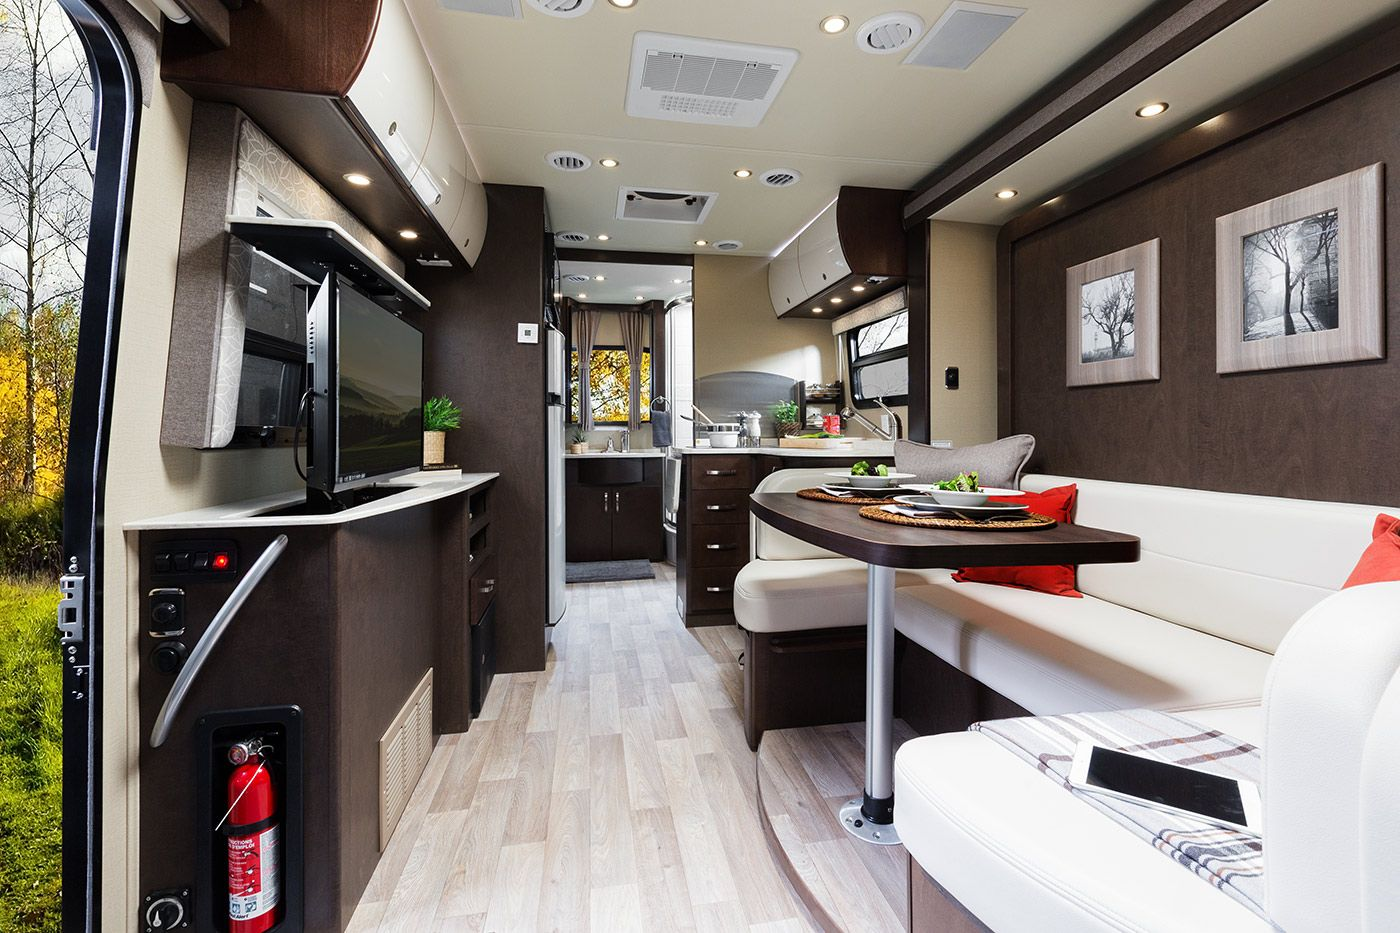 Leisure Travel Vans Unity Photo Gallery Rv Pinterest Leisure Travel Vans Rv And Rv Living